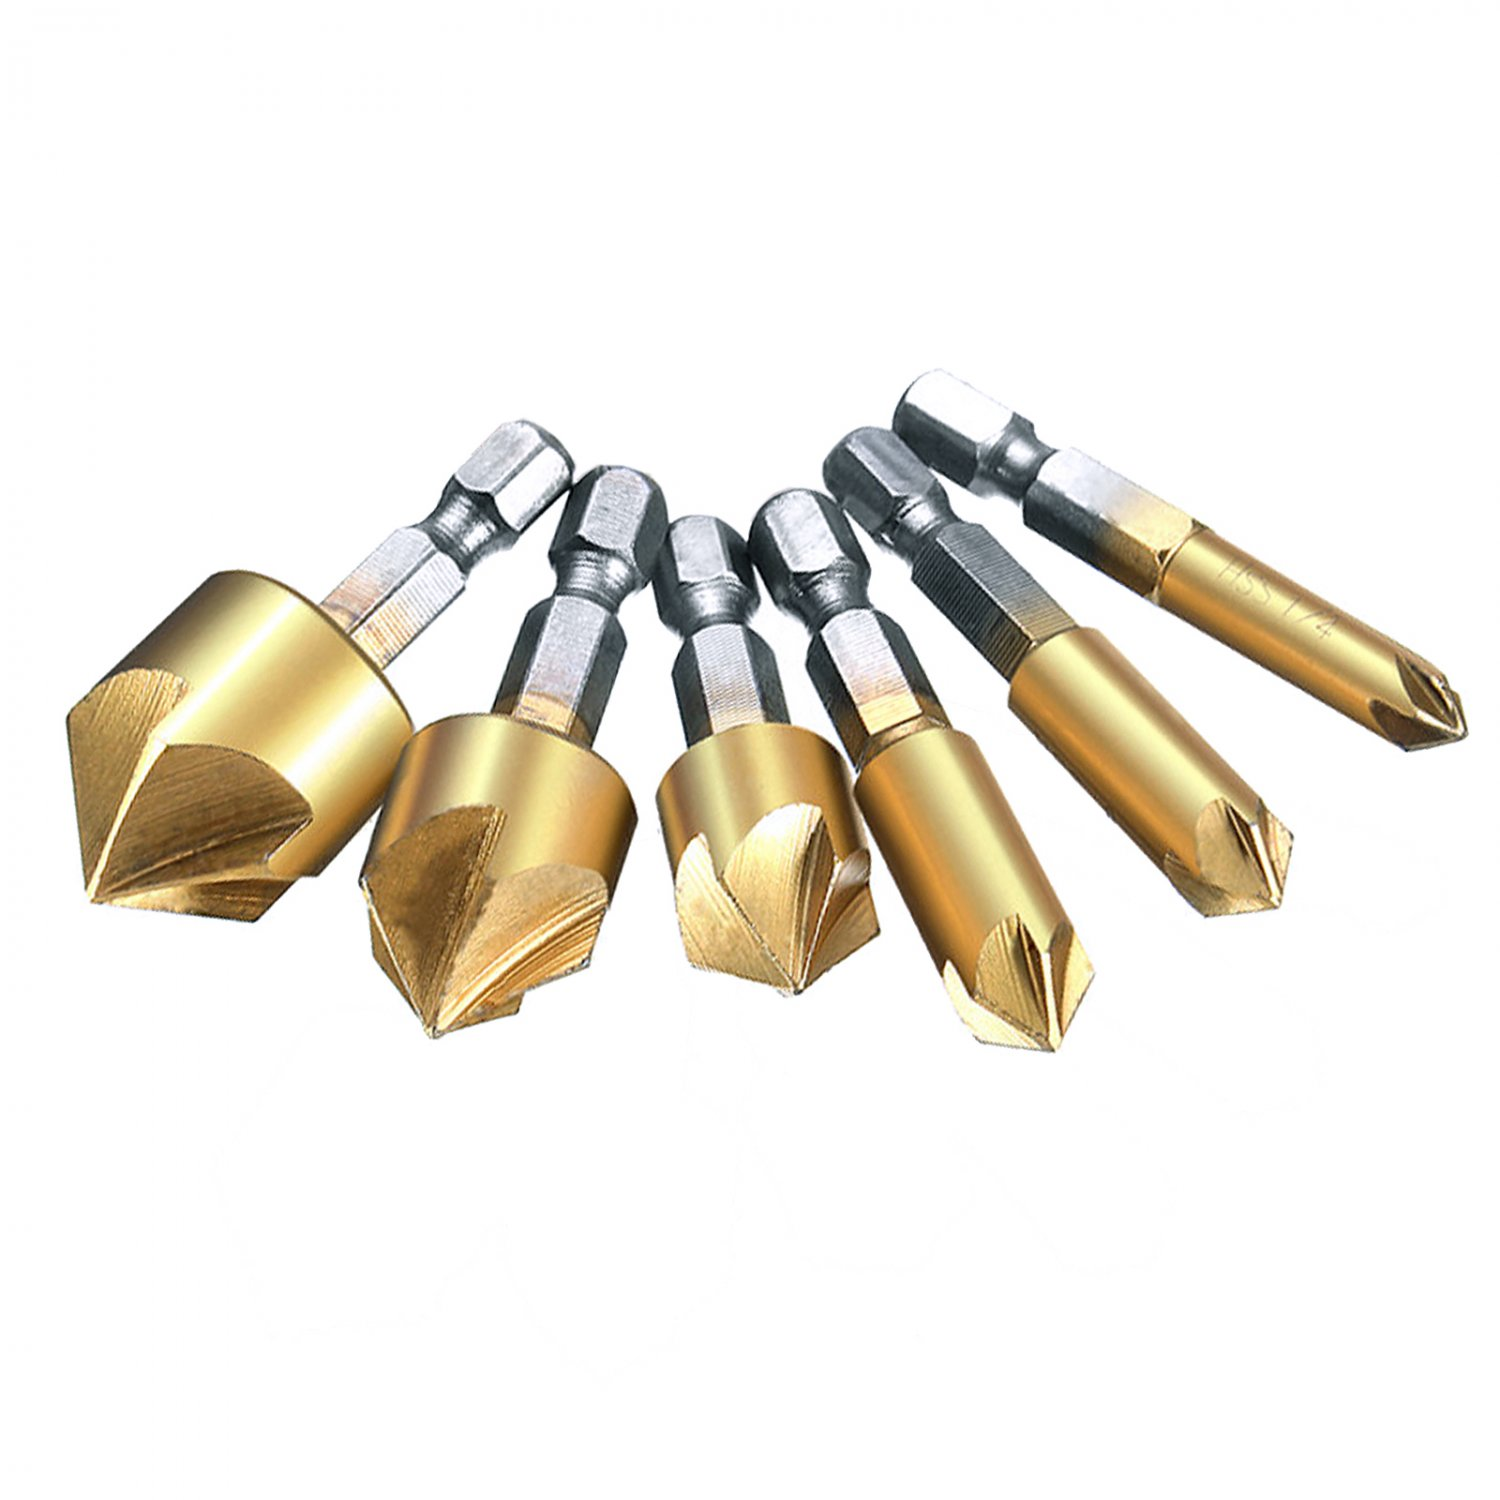 Wood Working Countersink Drill Bit Set Precision Ground 6pc Kit Hown store